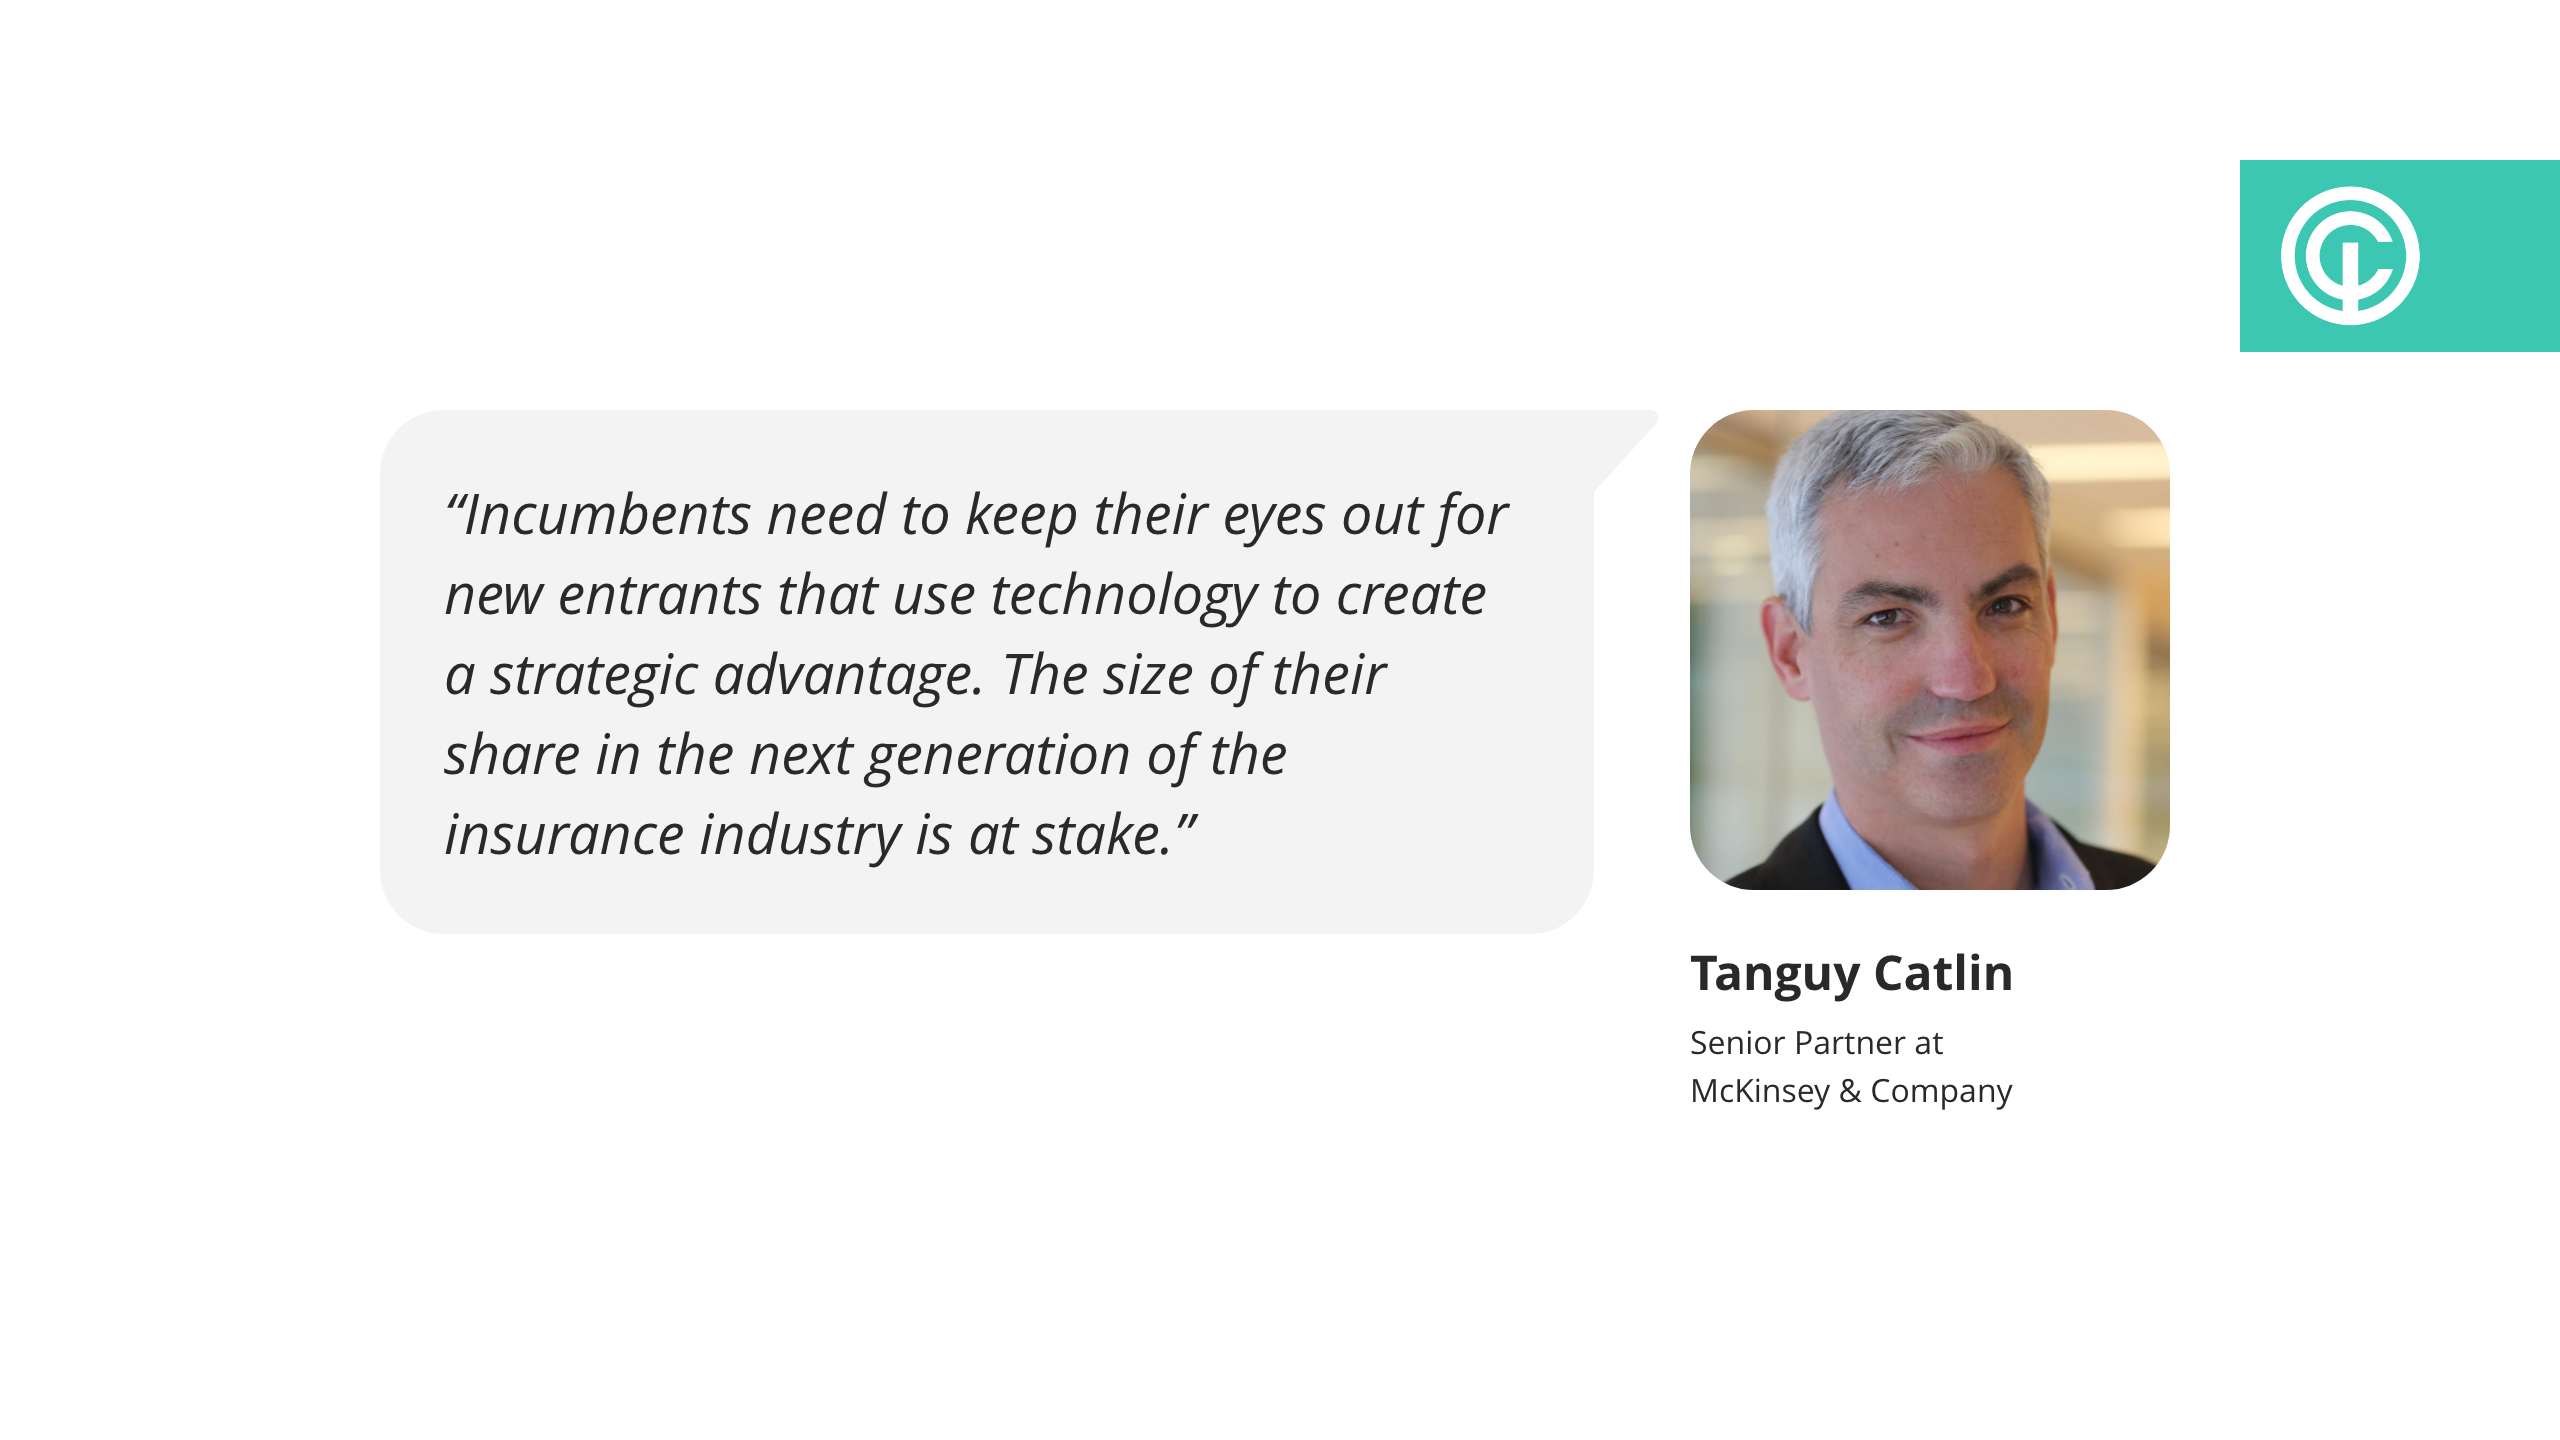 quote from tanguy catlin